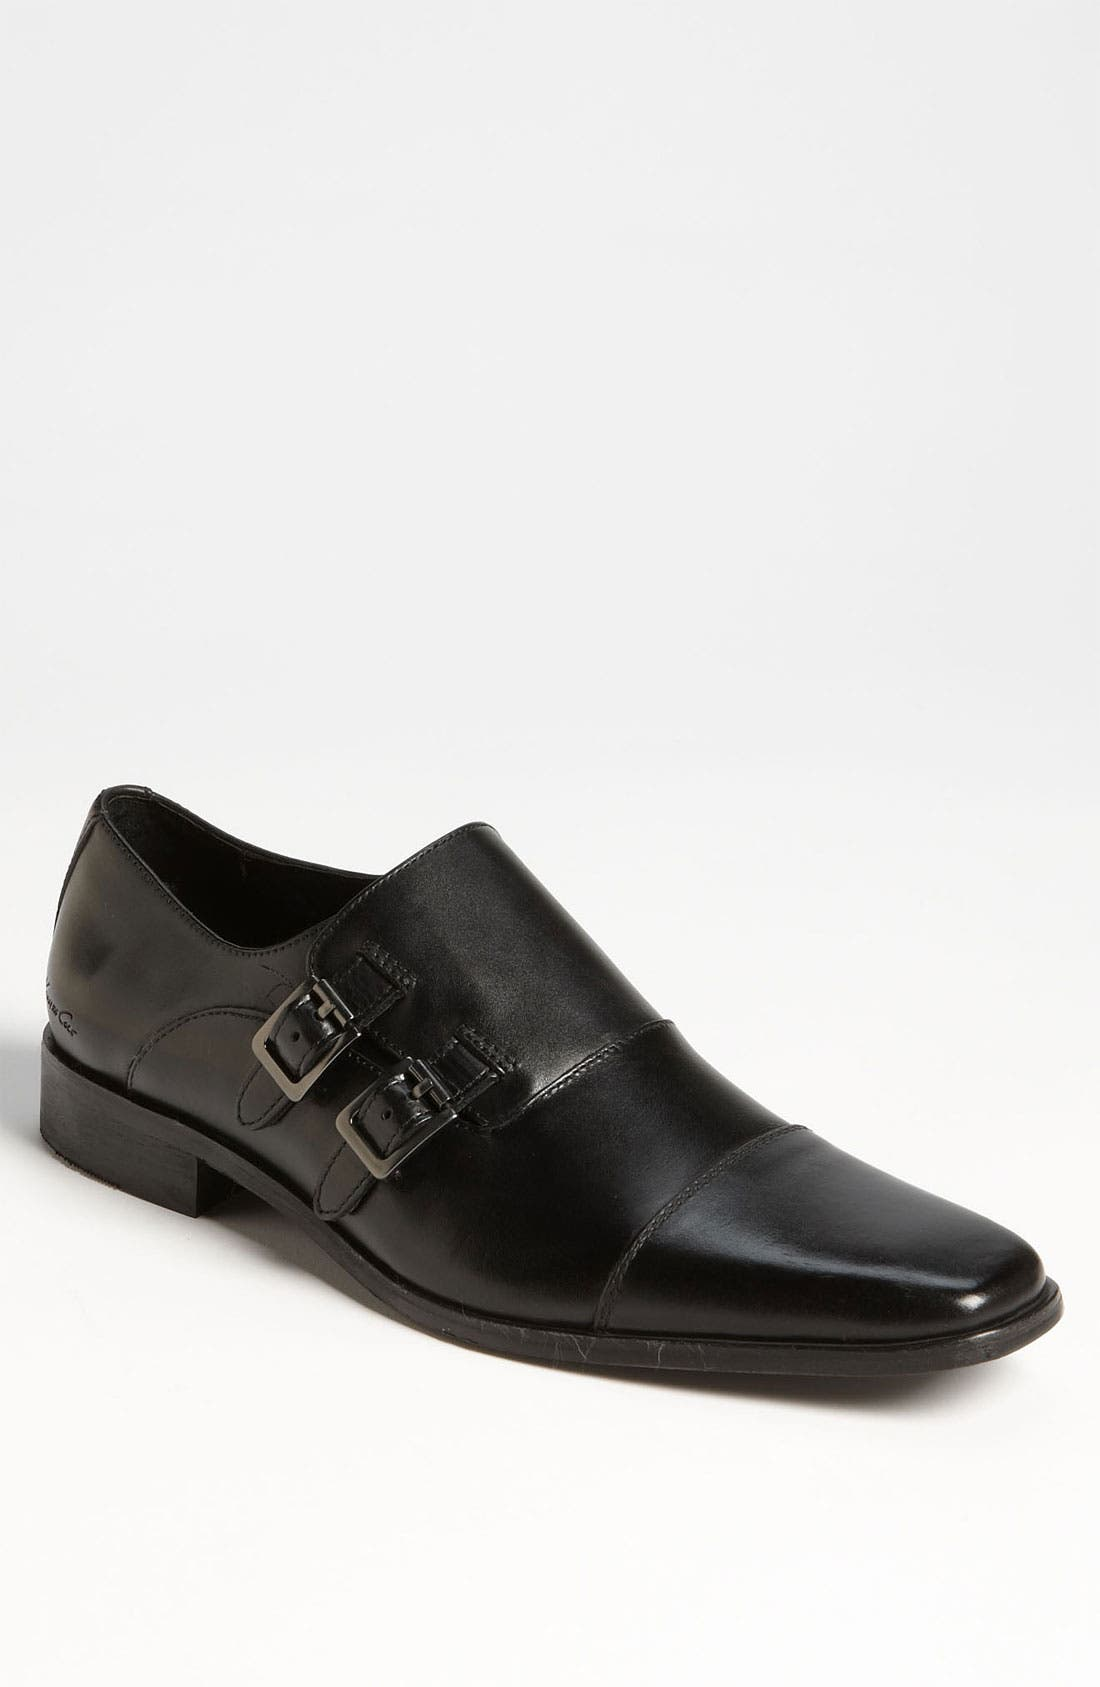 Alternate Image 1 Selected - Kenneth Cole New York 'Fancy First' Double Monk Strap Slip-On